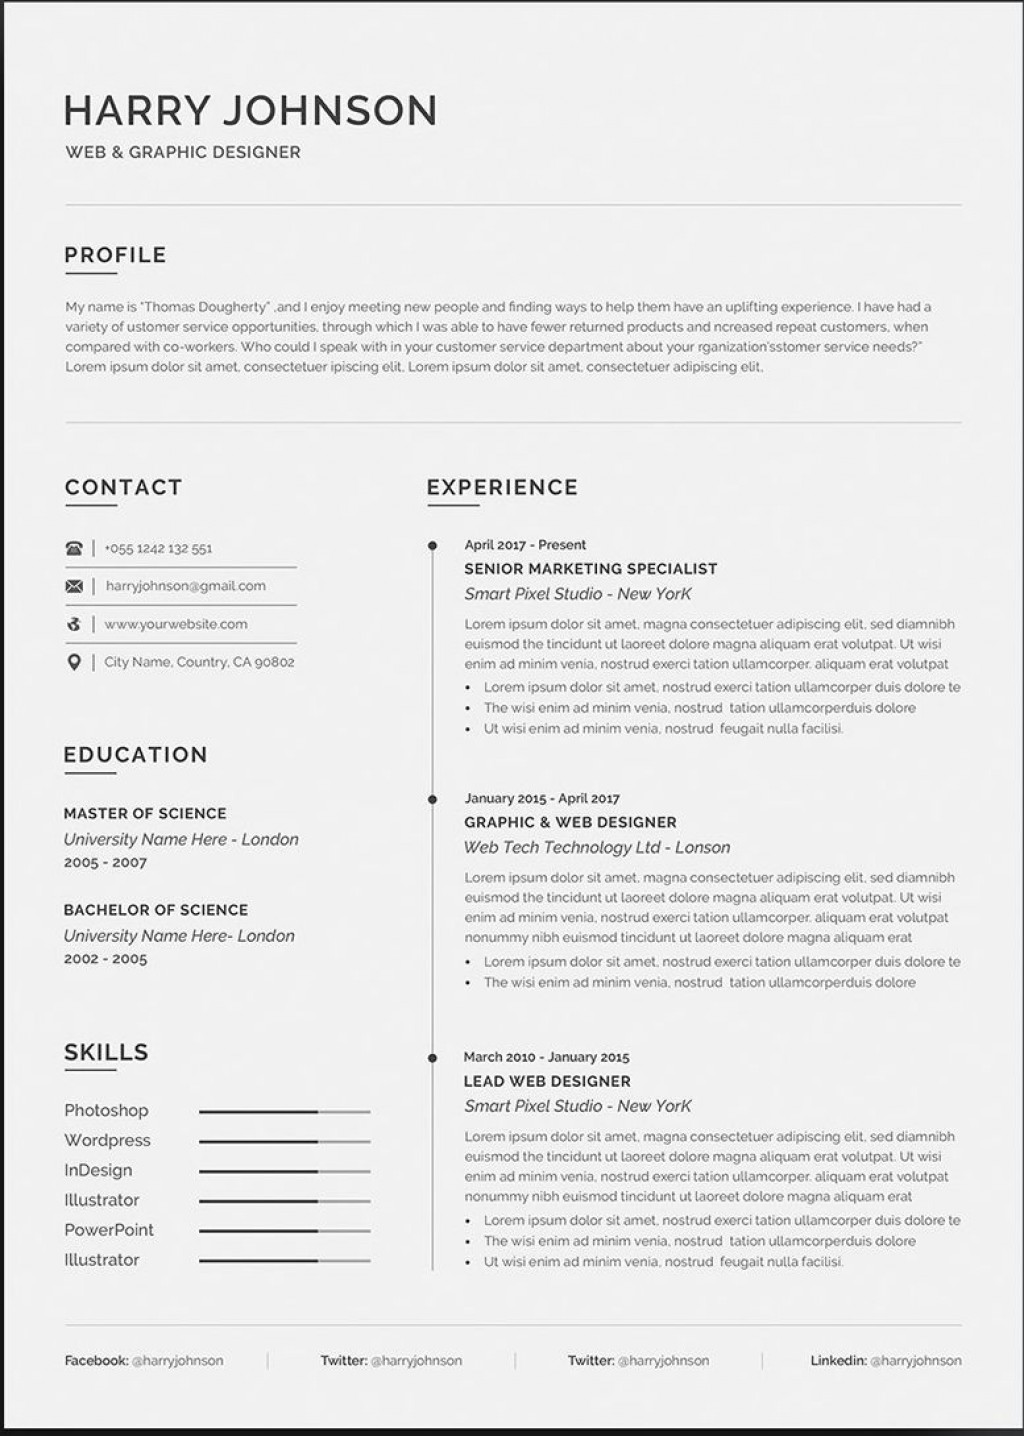 005 Stunning Word Template For Resume Highest Quality  Resumes M Free Best Document DownloadLarge